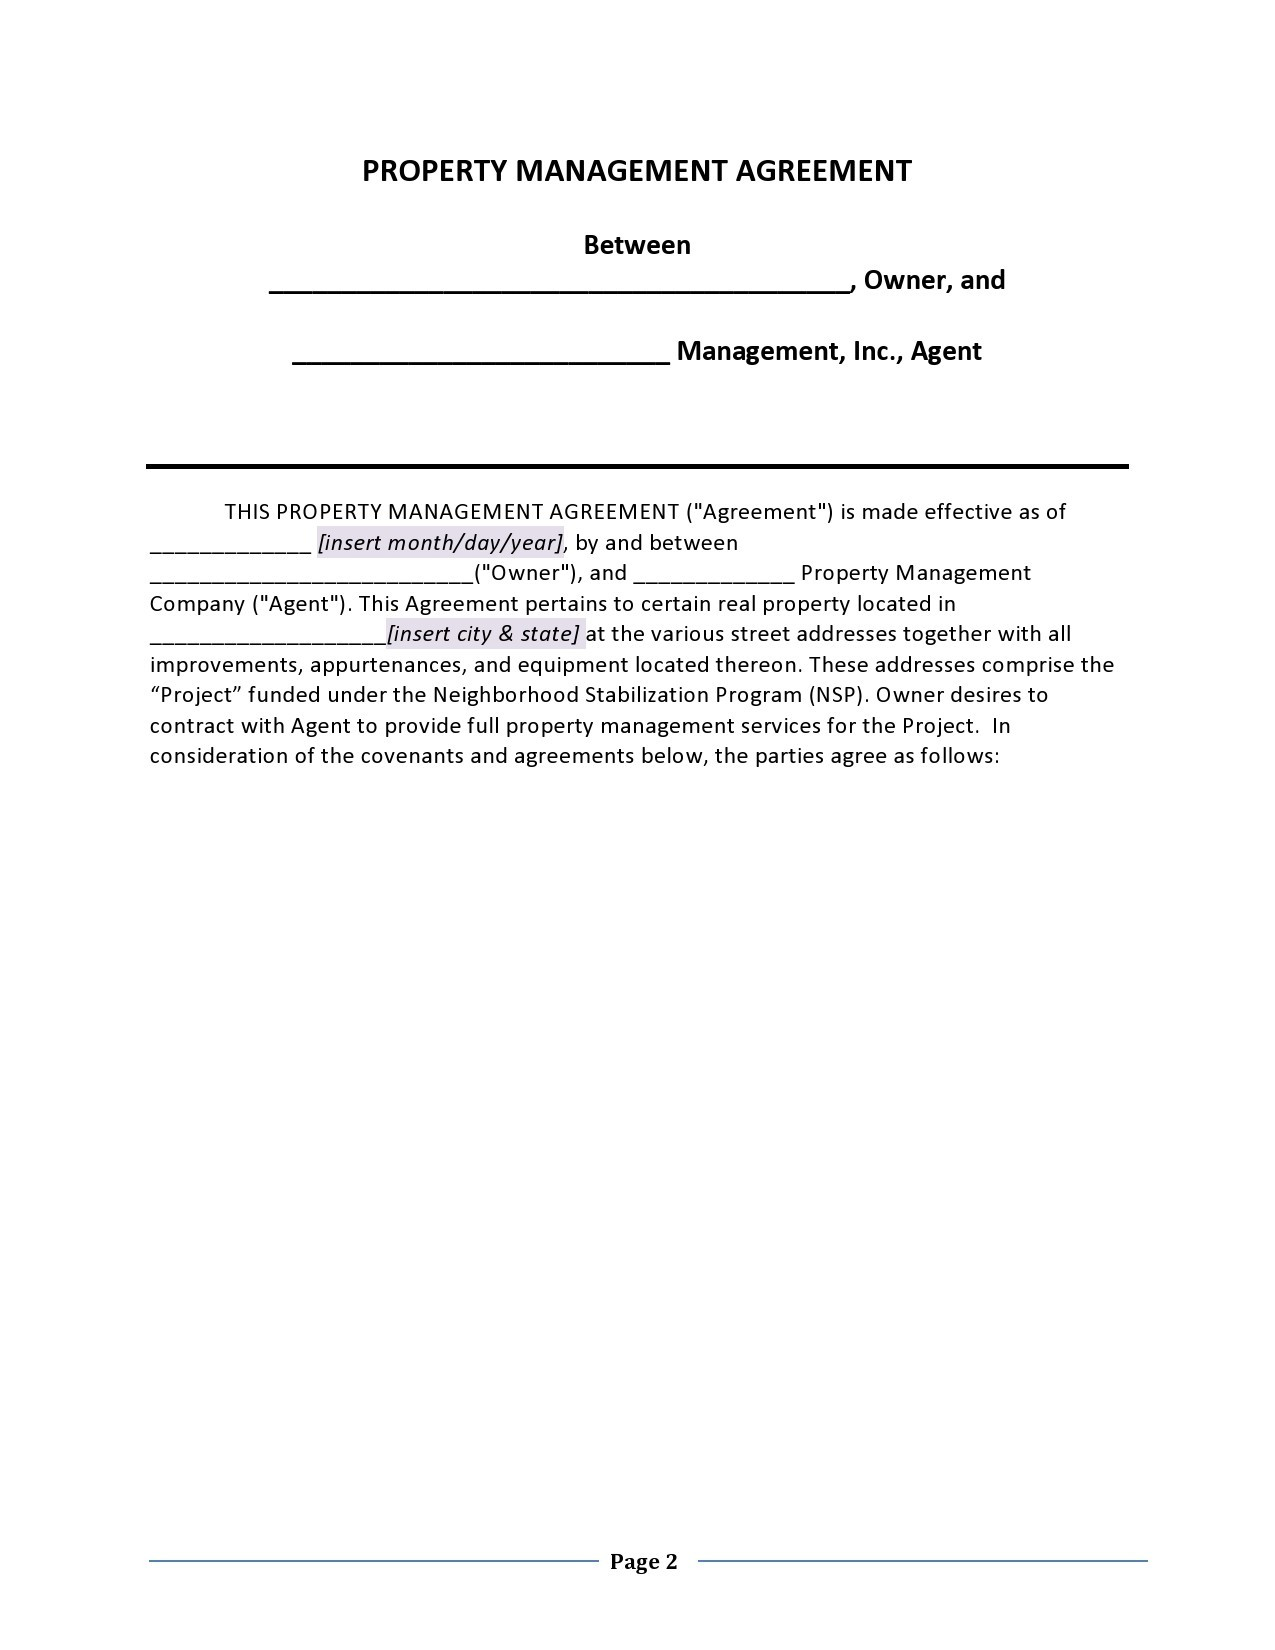 Free property management agreement 02